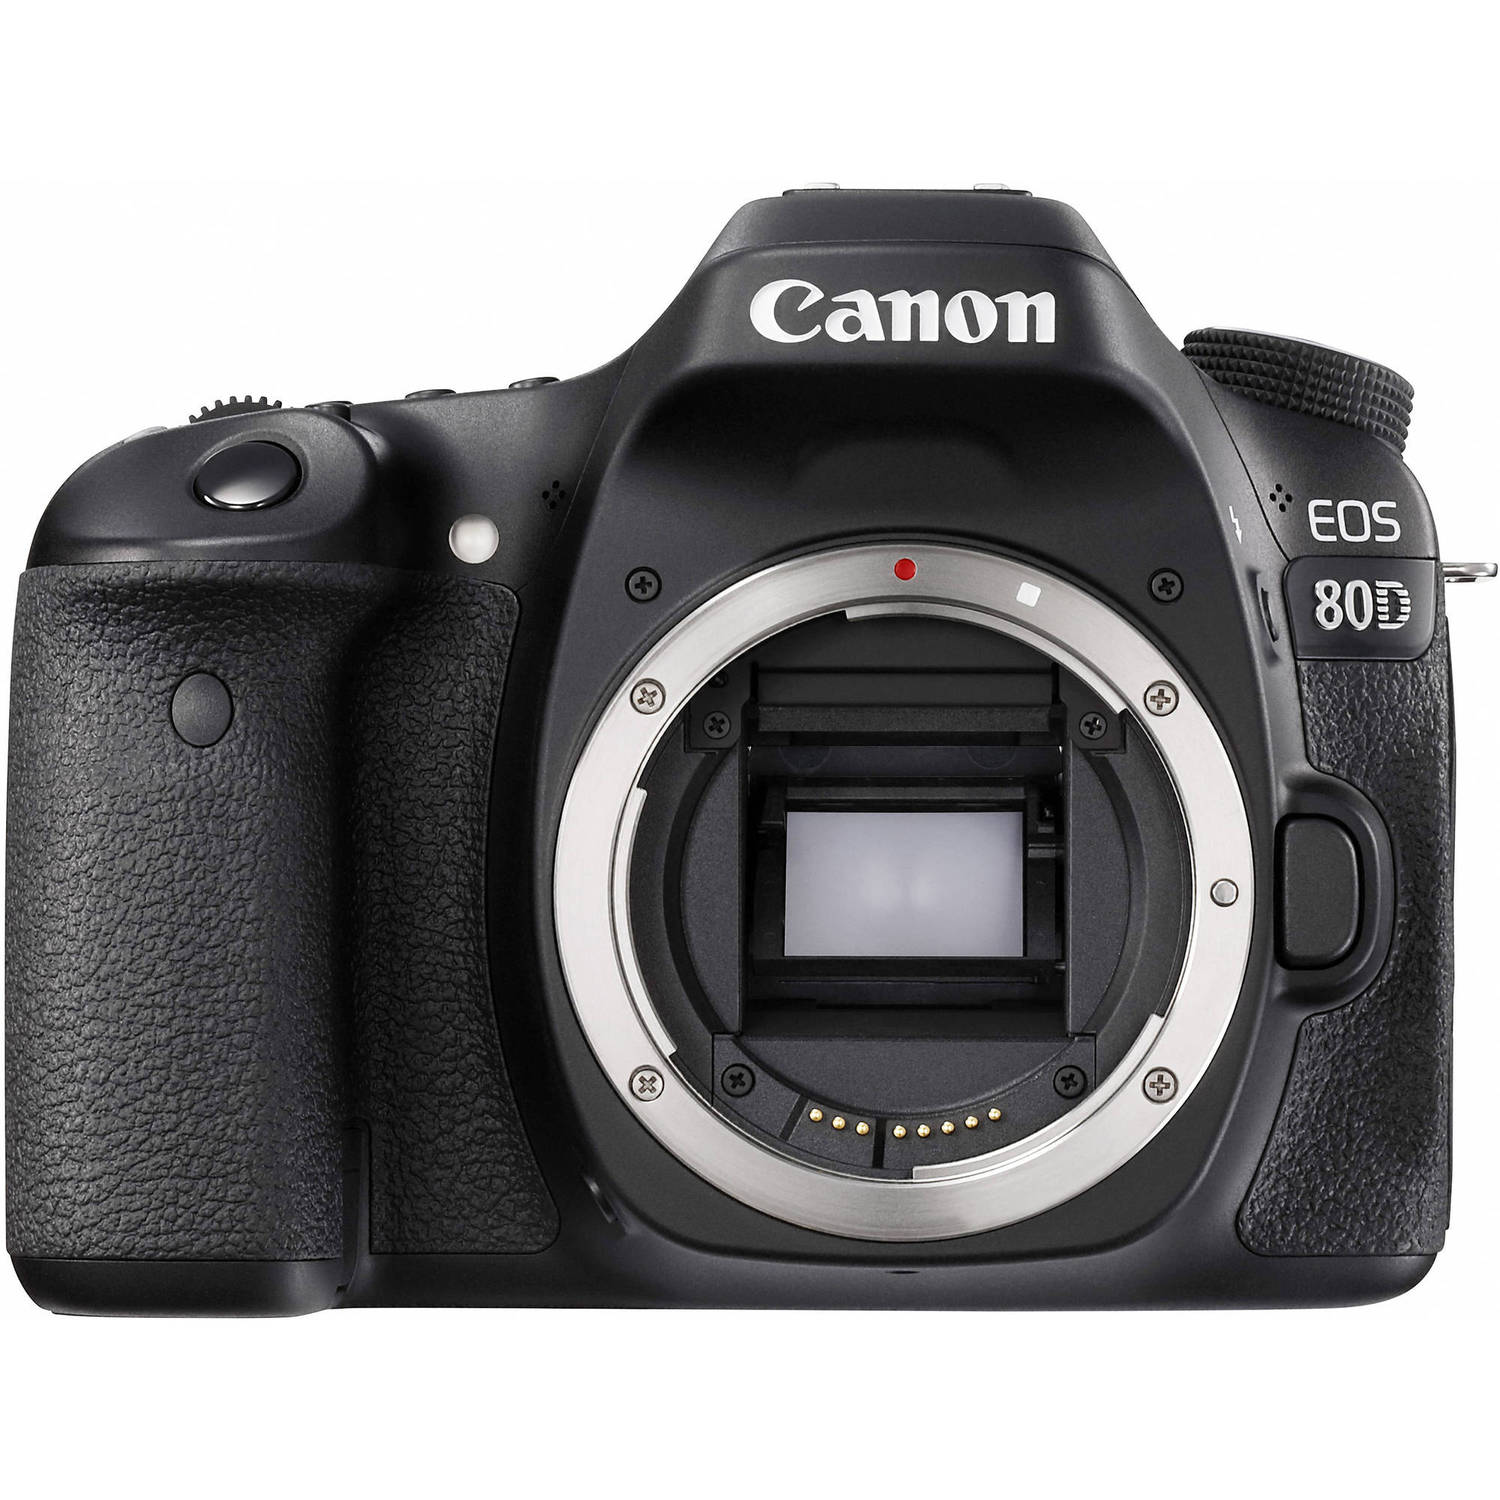 Canon EOS 80D DSLR Camera Body (Black)